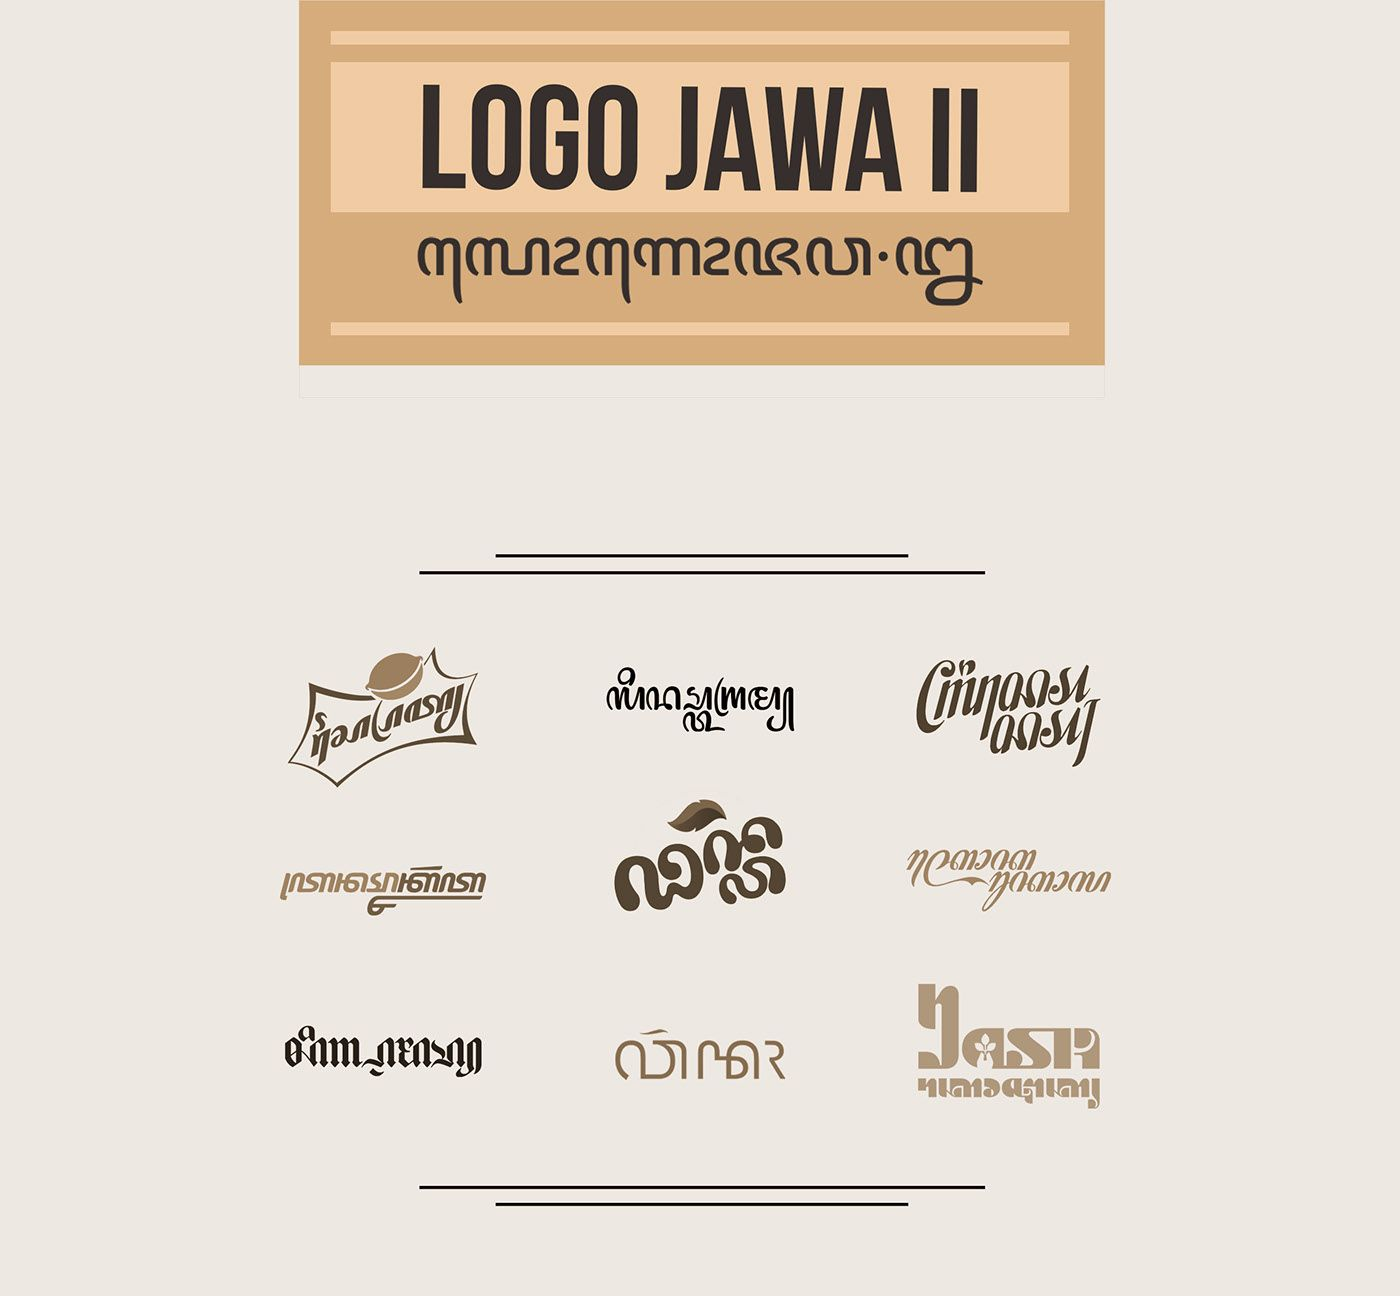 Check out my behance project javanese logos ii https